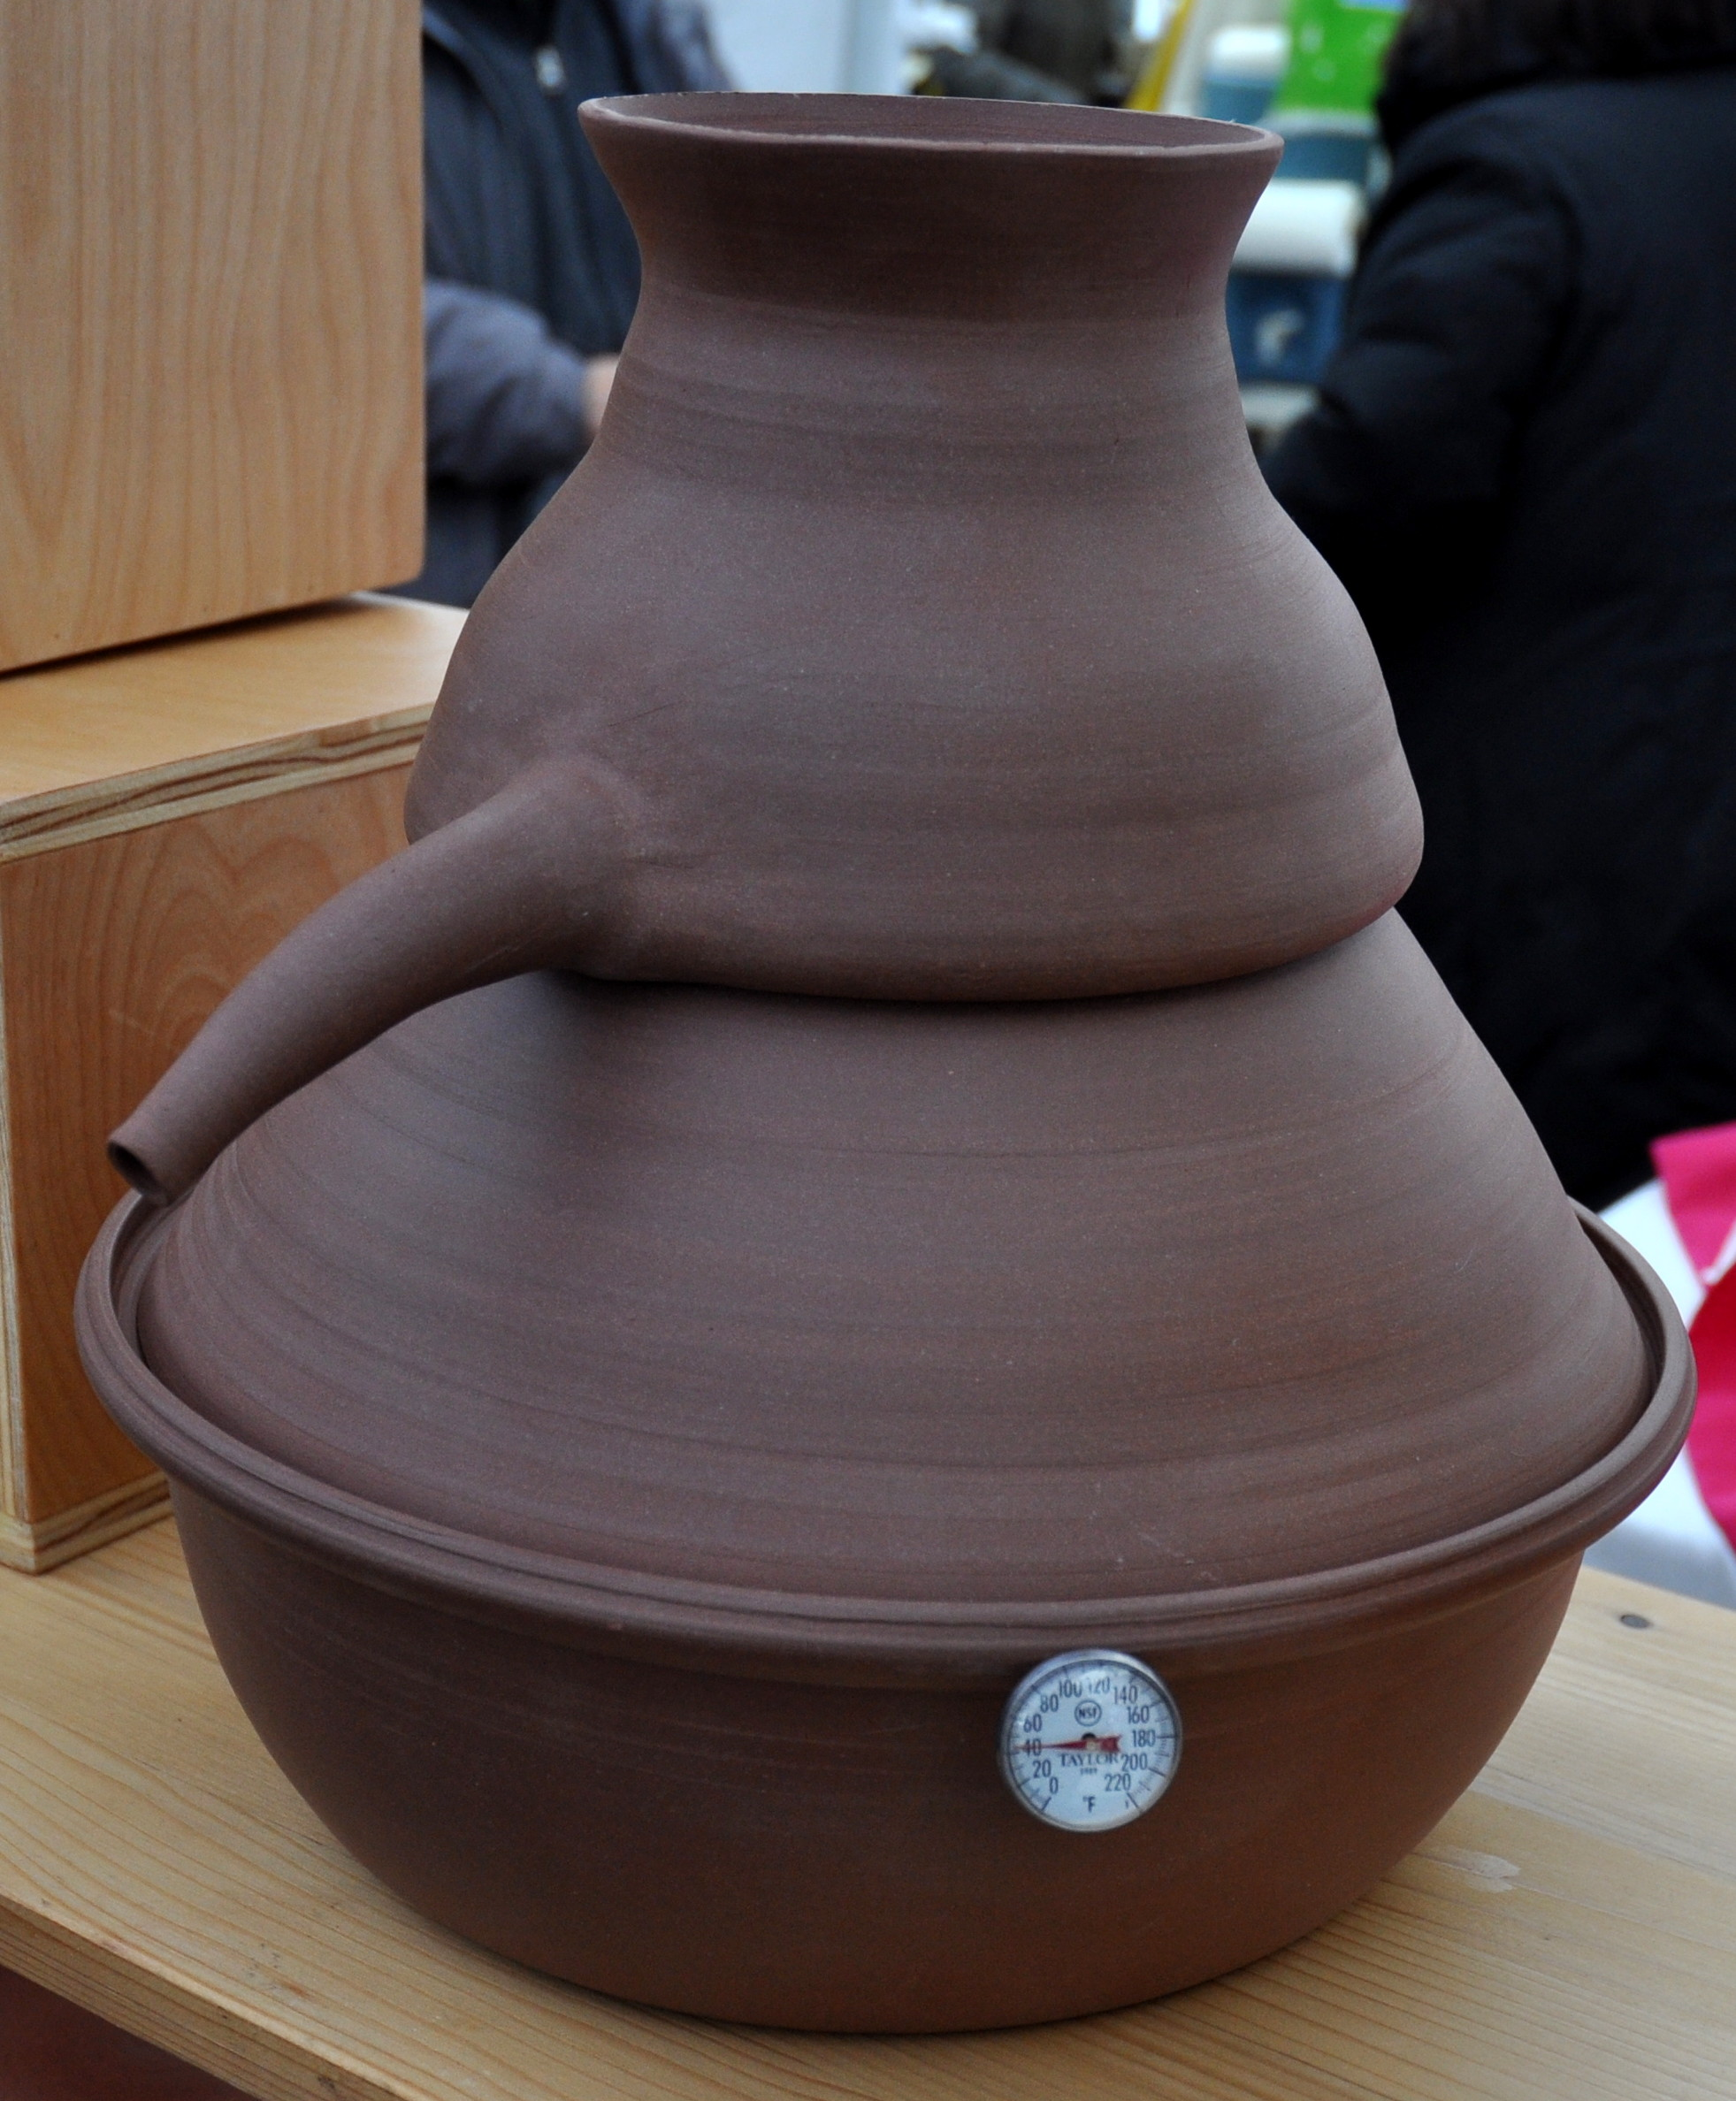 A personal-sized still from Daily Bird Pottery. Photo copyright 2012 by Zachary D. Lyons.